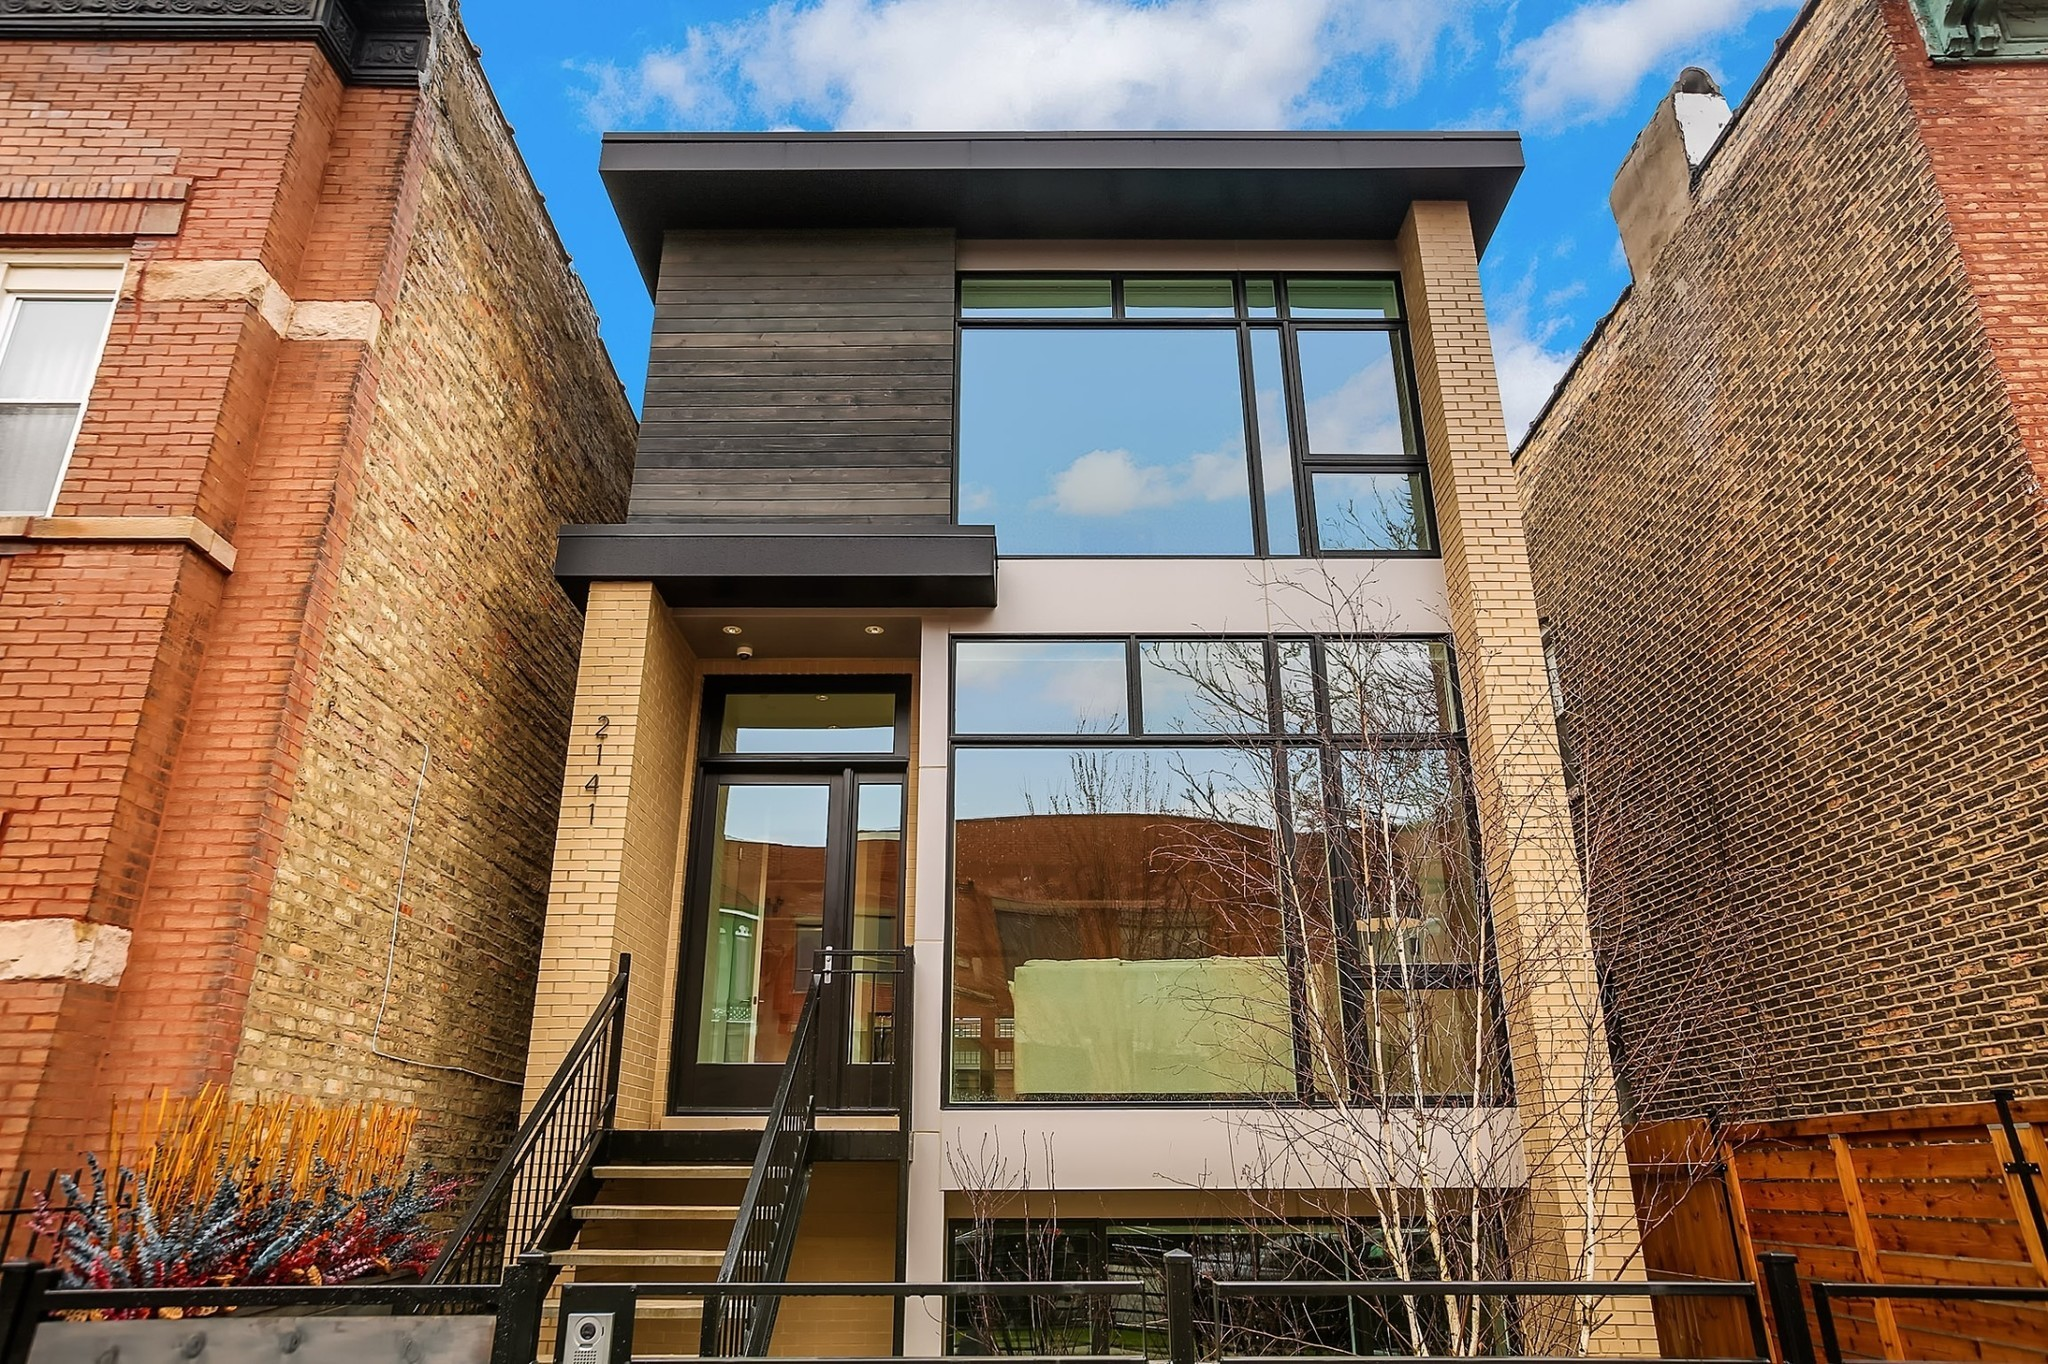 Contemporary home in Ukrainian Village: $1.25M - Chicago Tribune